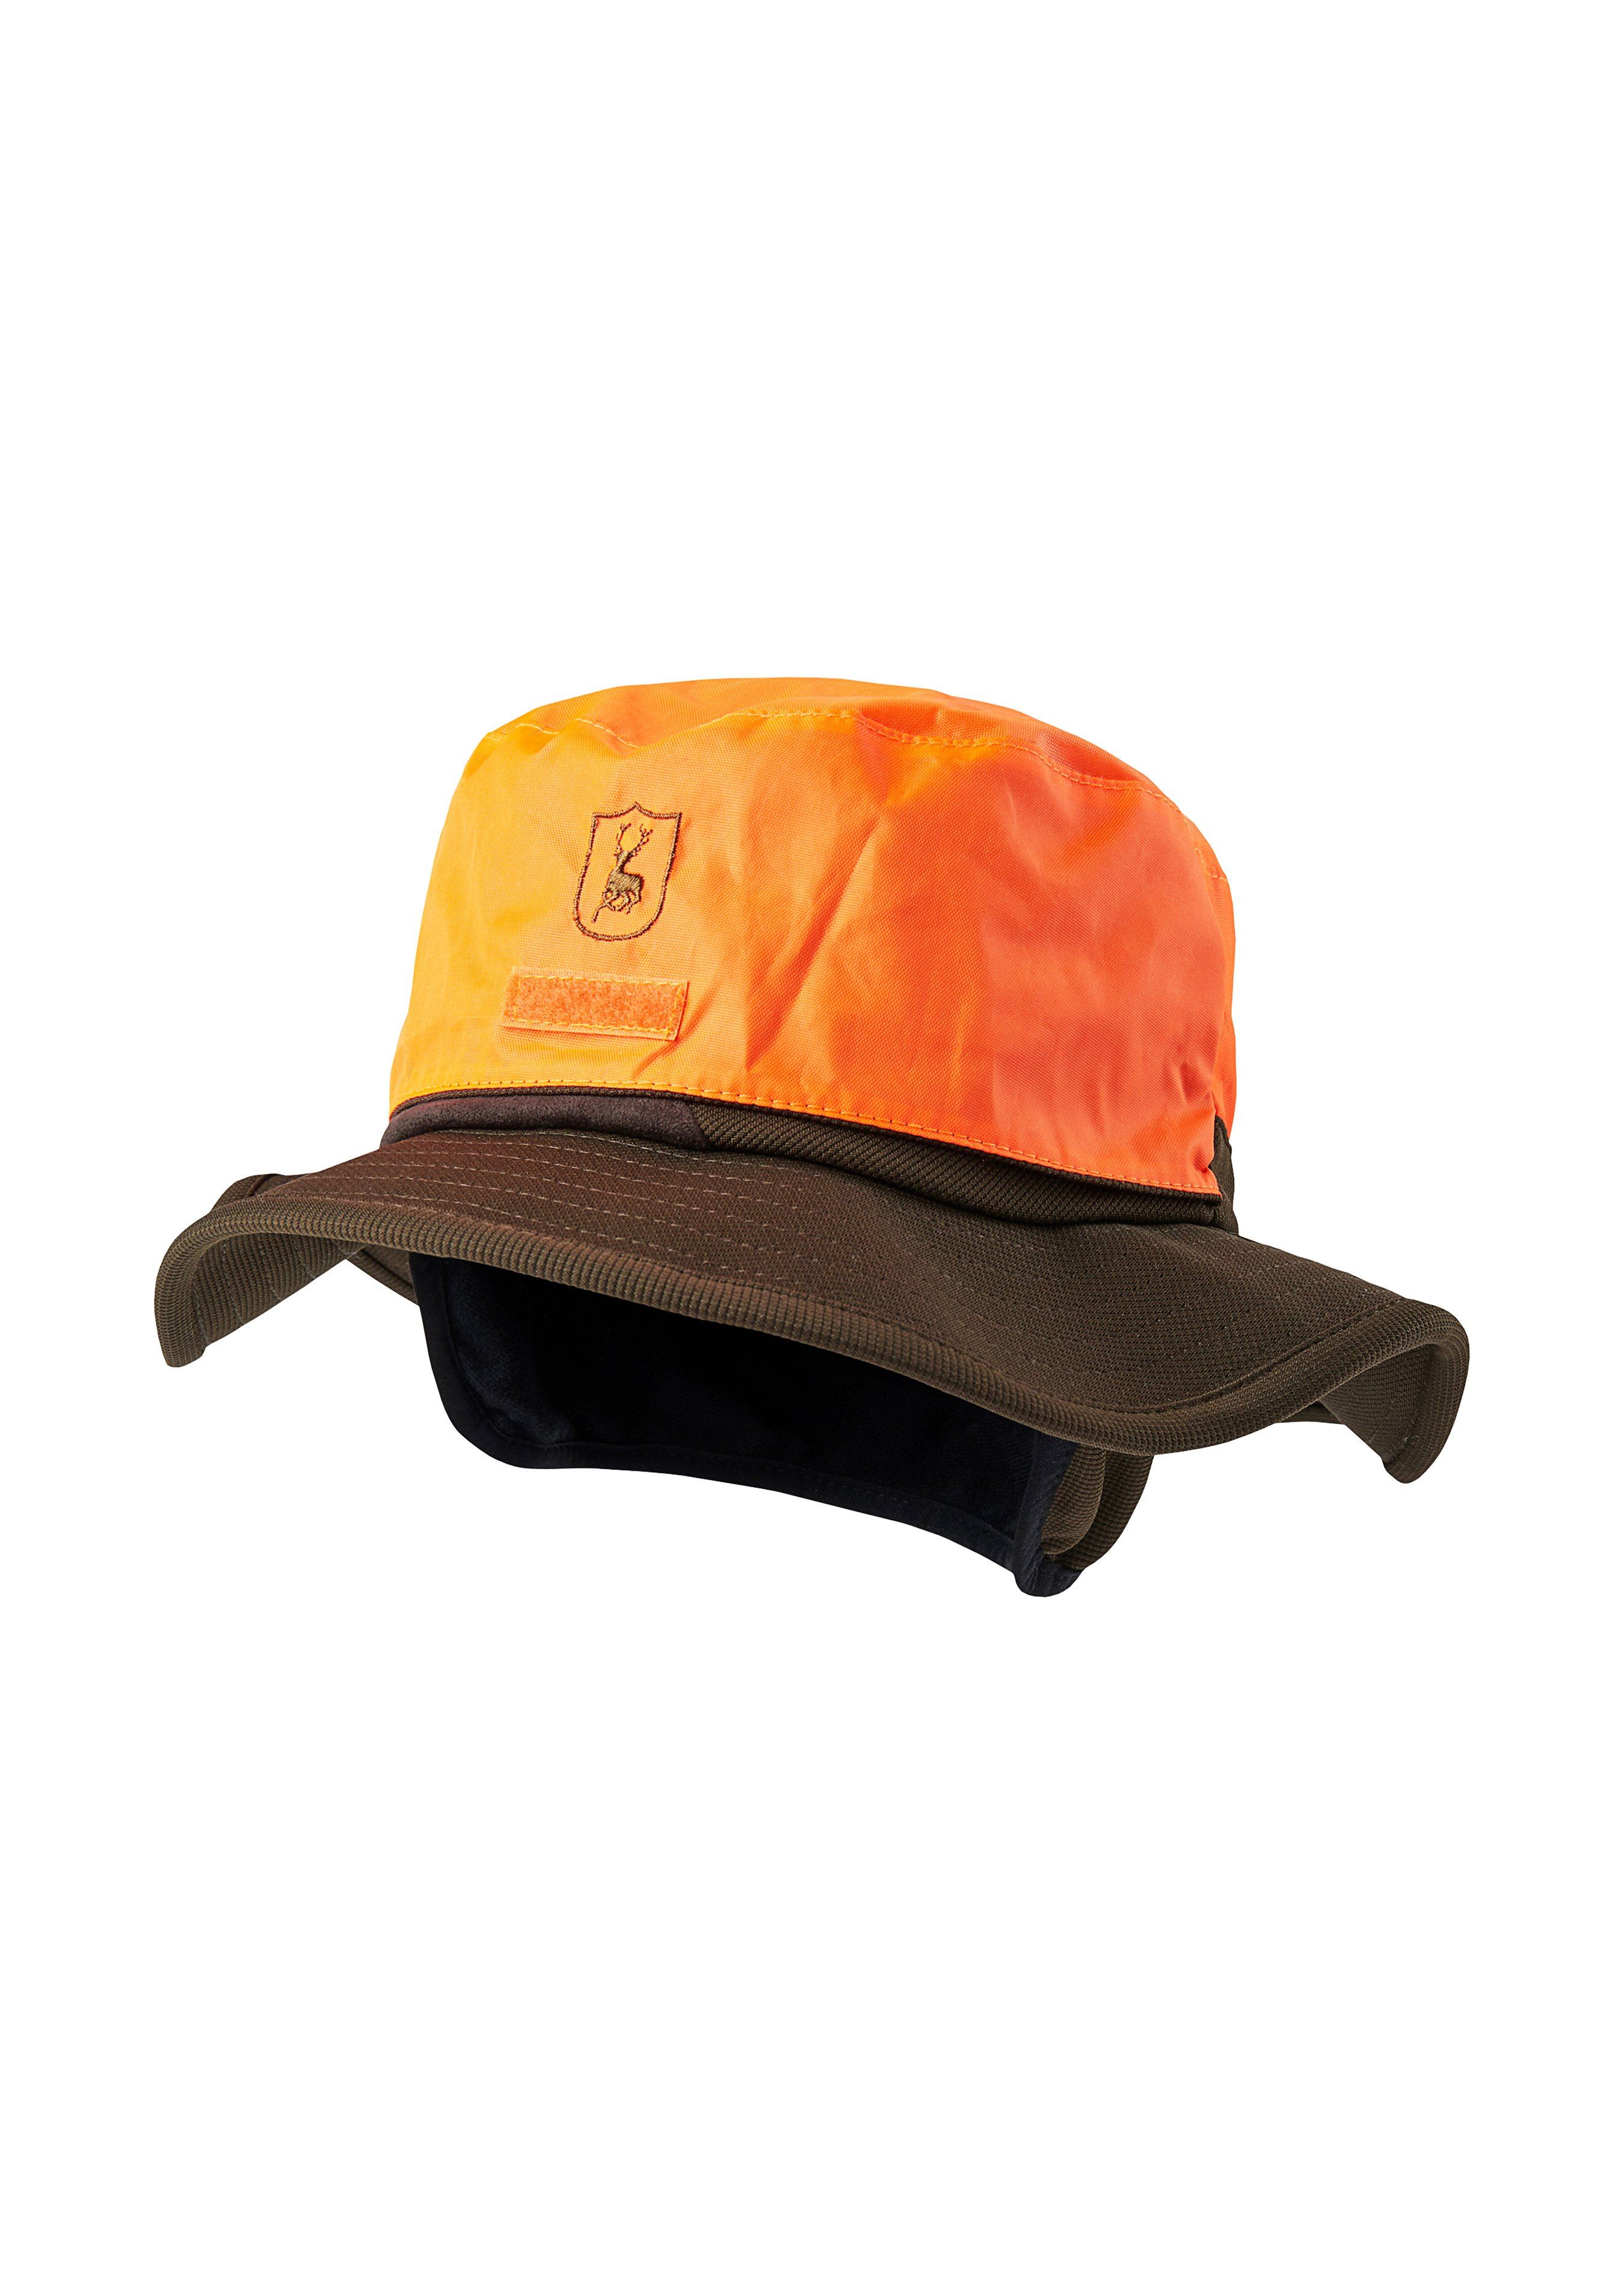 Deerhunter Jagdhut Muflon Safety reversibel 24084056 2